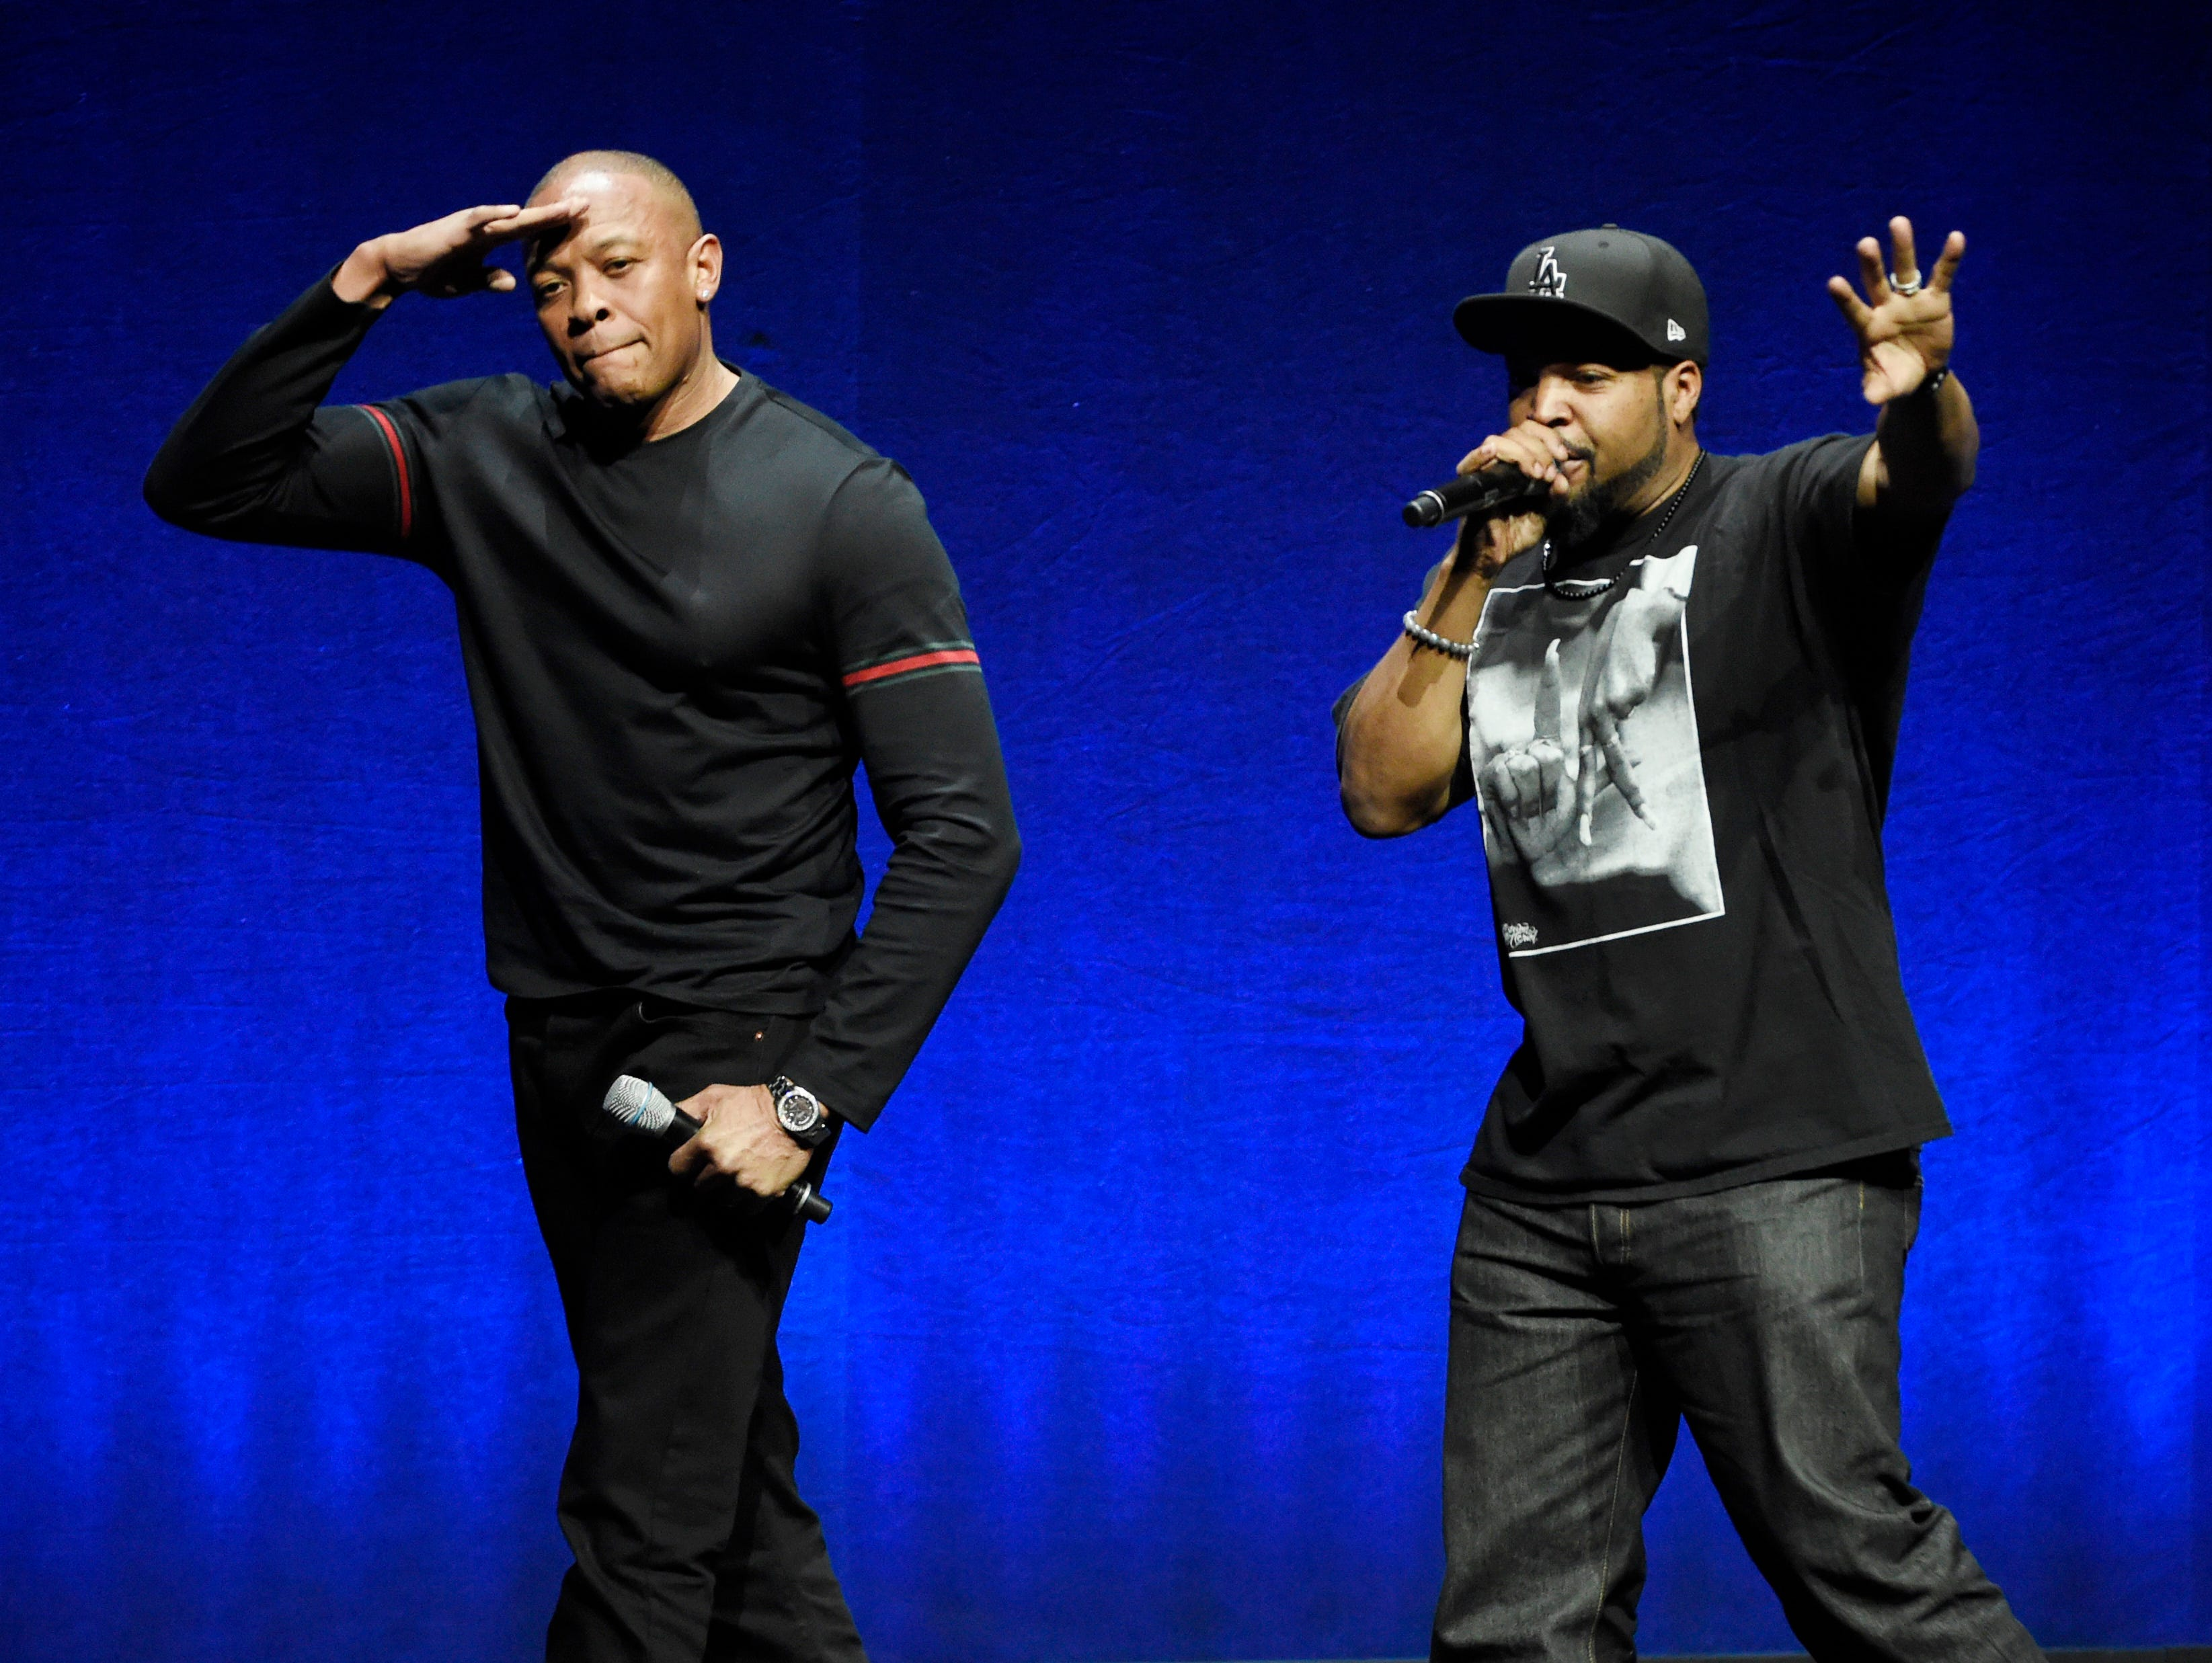 """N.W.A. members Dr. Dre, left, and Ice Cube, two of the subjects of the upcoming biographical drama """"Straight Outta Compton,"""" salute the crowd after speaking at the Universal Pictures presentation during CinemaCon 2015 at Caesars Palace on Thursday, April 23, 2015, in Las Vegas. (Photo by Chris Pizzello/Invision/AP)"""